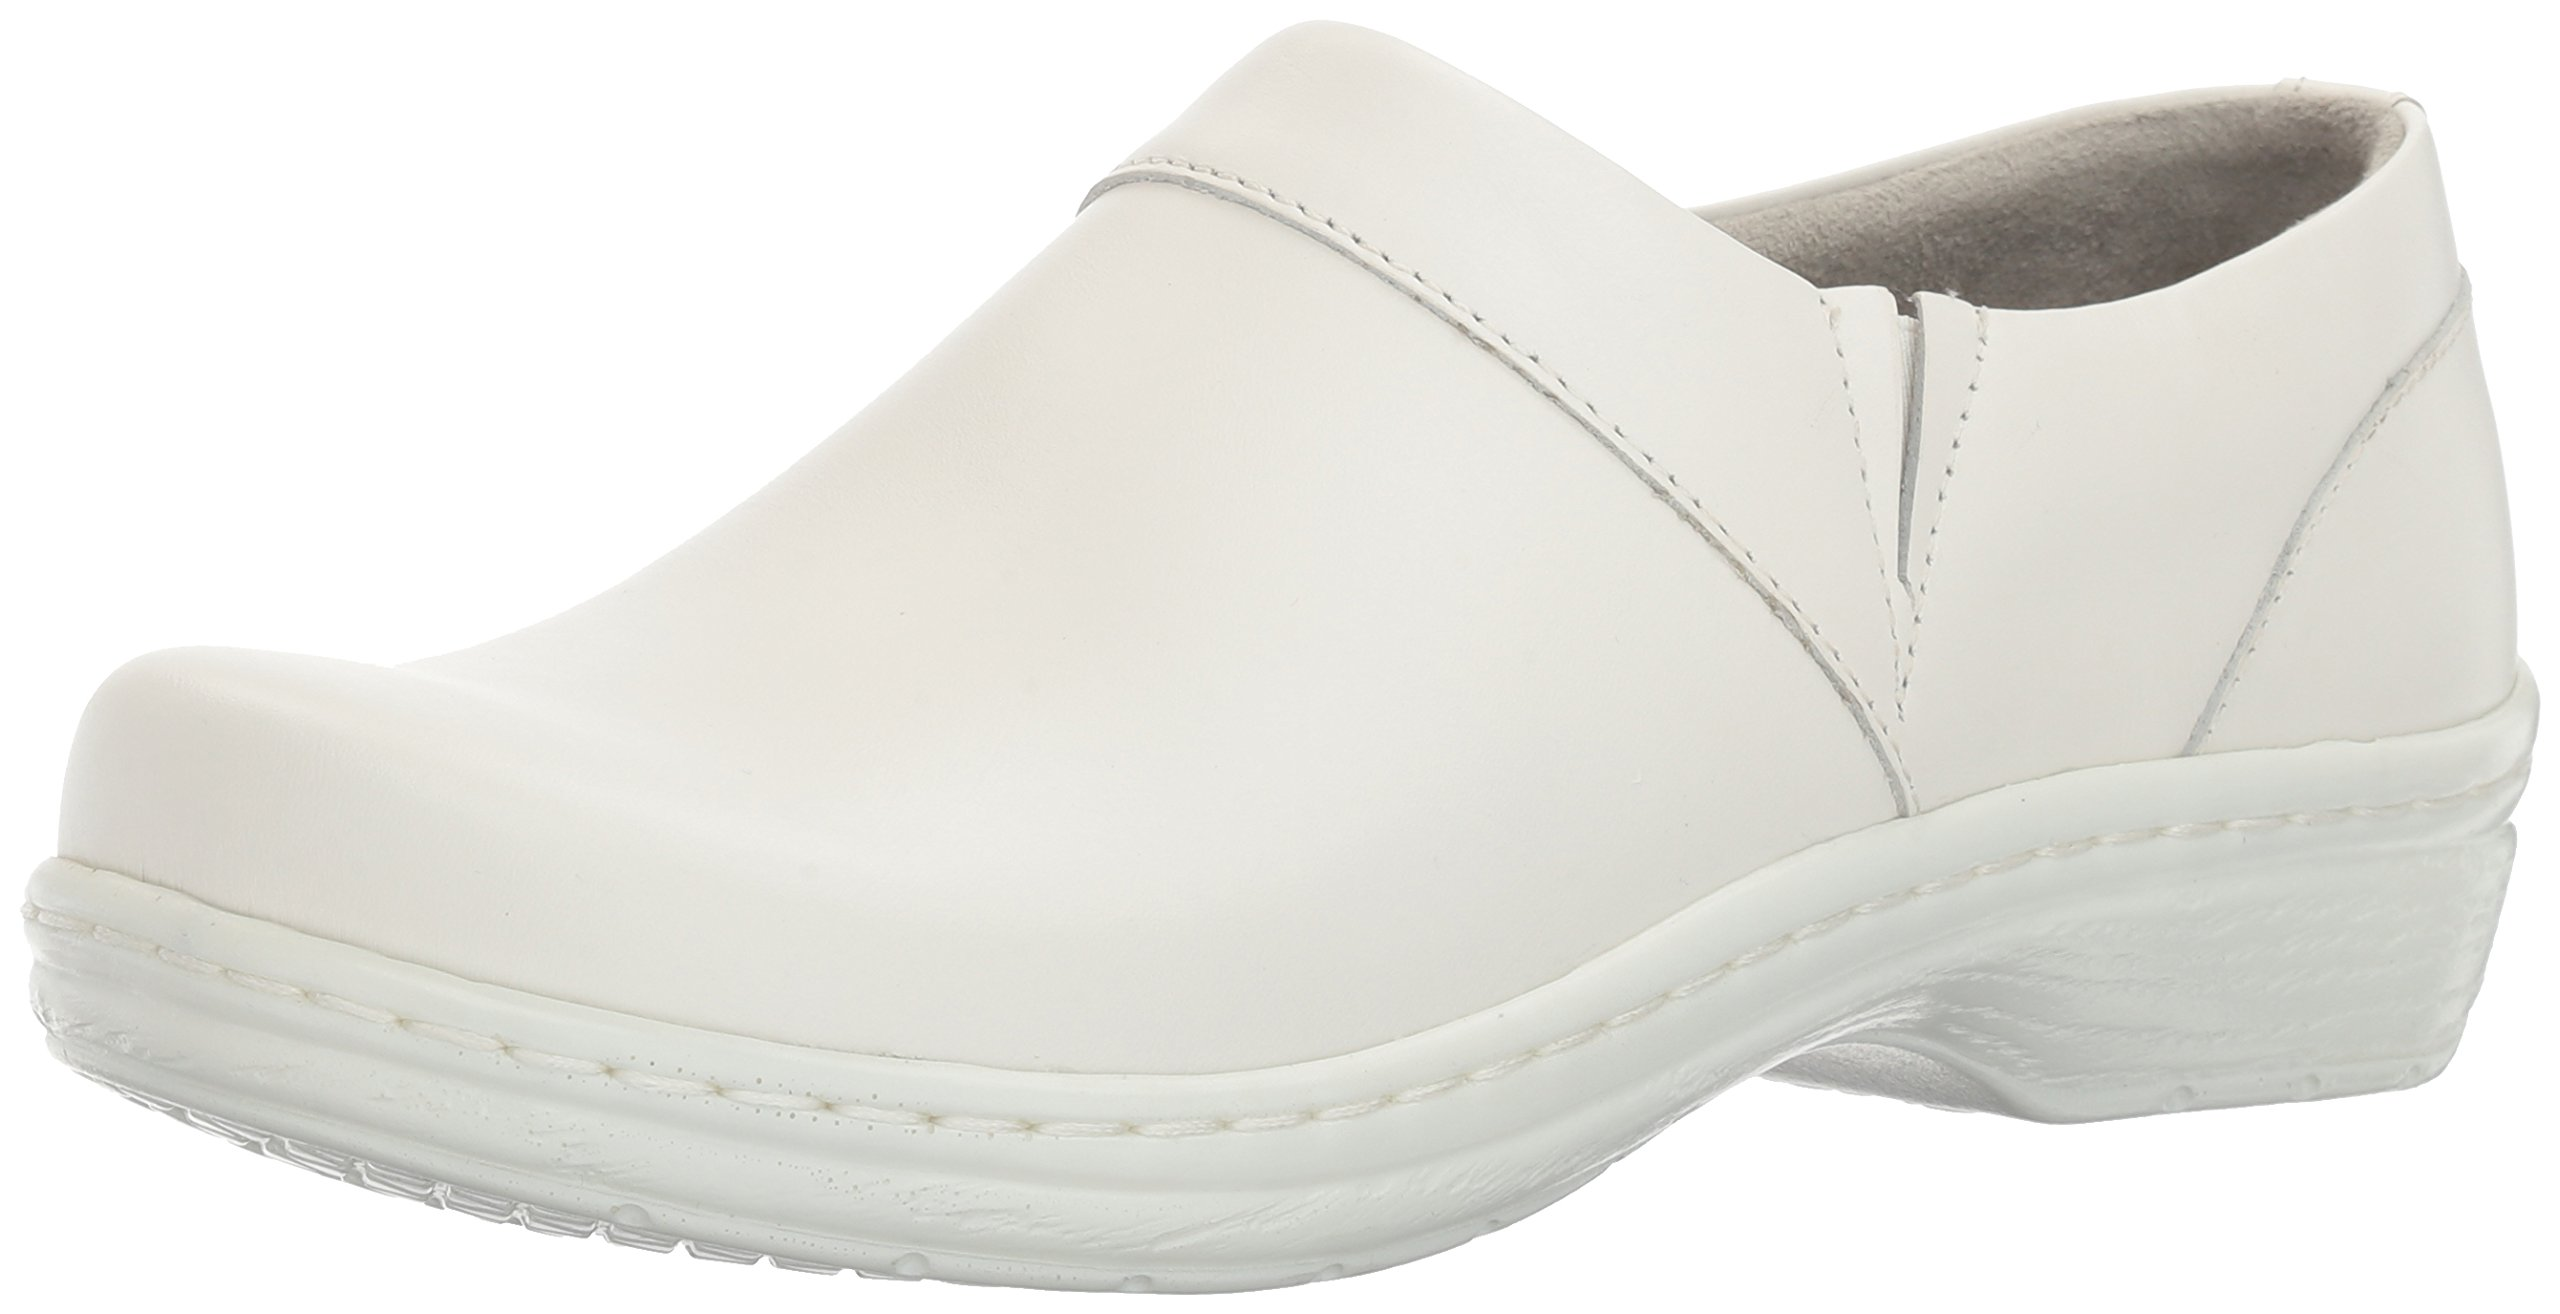 Klogs USA Women's Mission Clog,White,11 M US